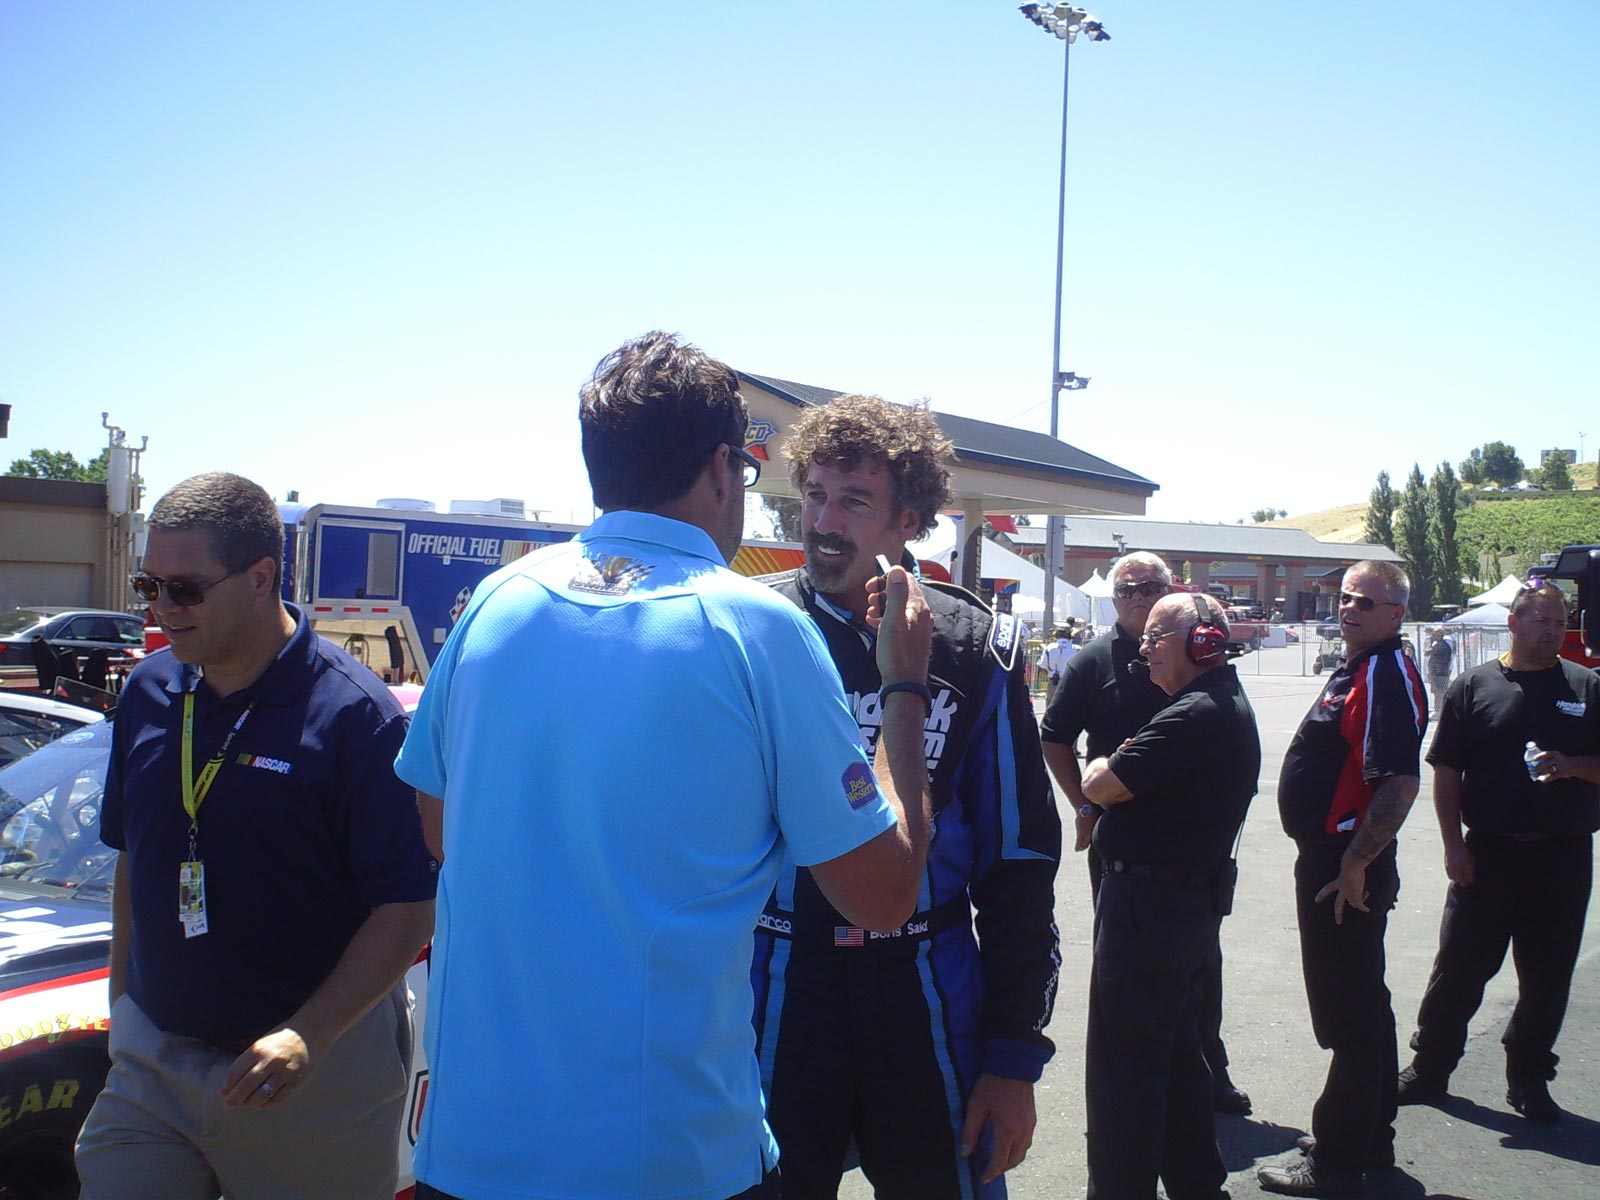 sonoma-saturday-boris-said-michael-waltrip